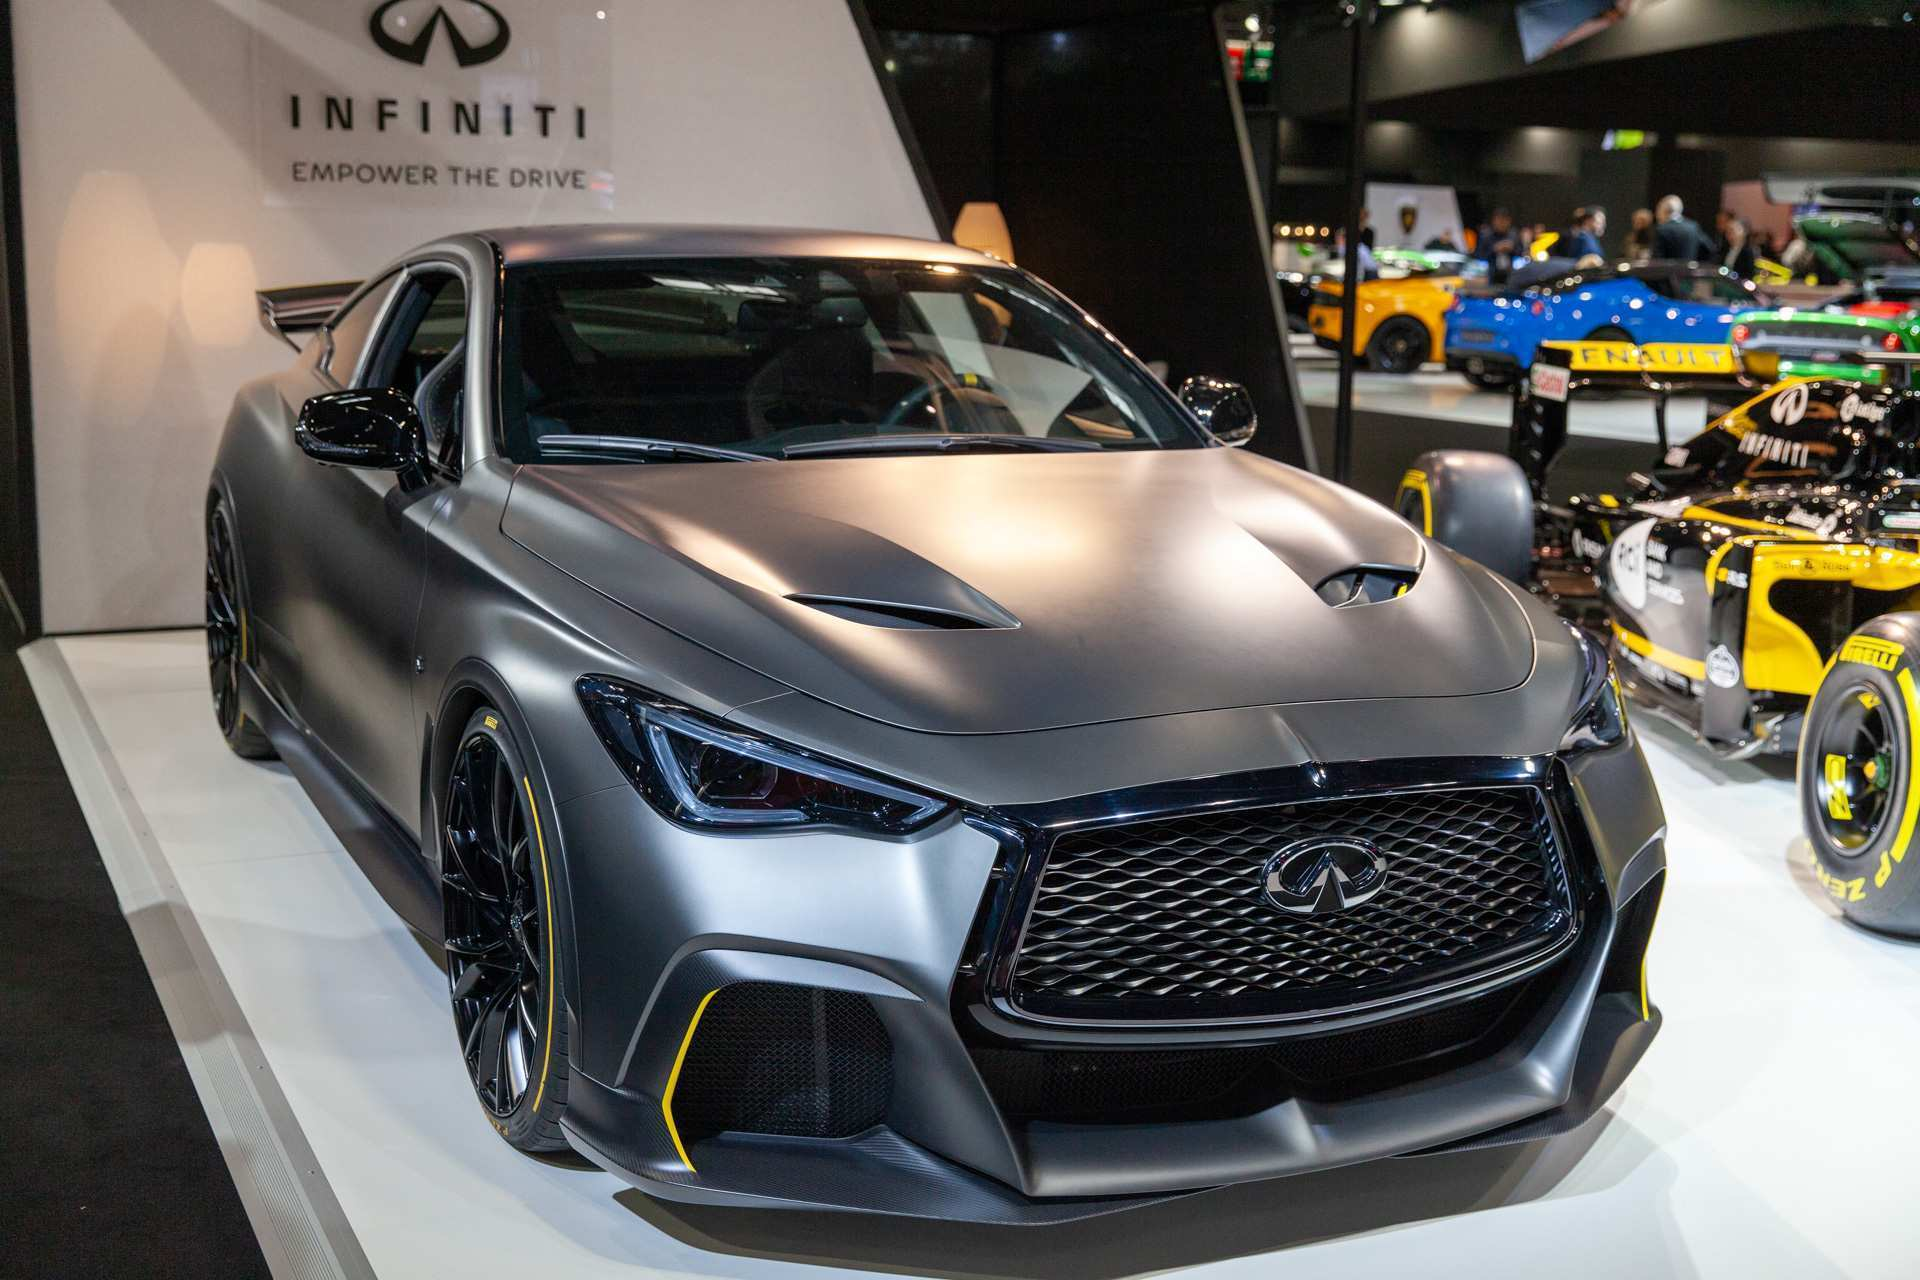 99 The Best 2020 Infiniti Q60 Red Sport Concept